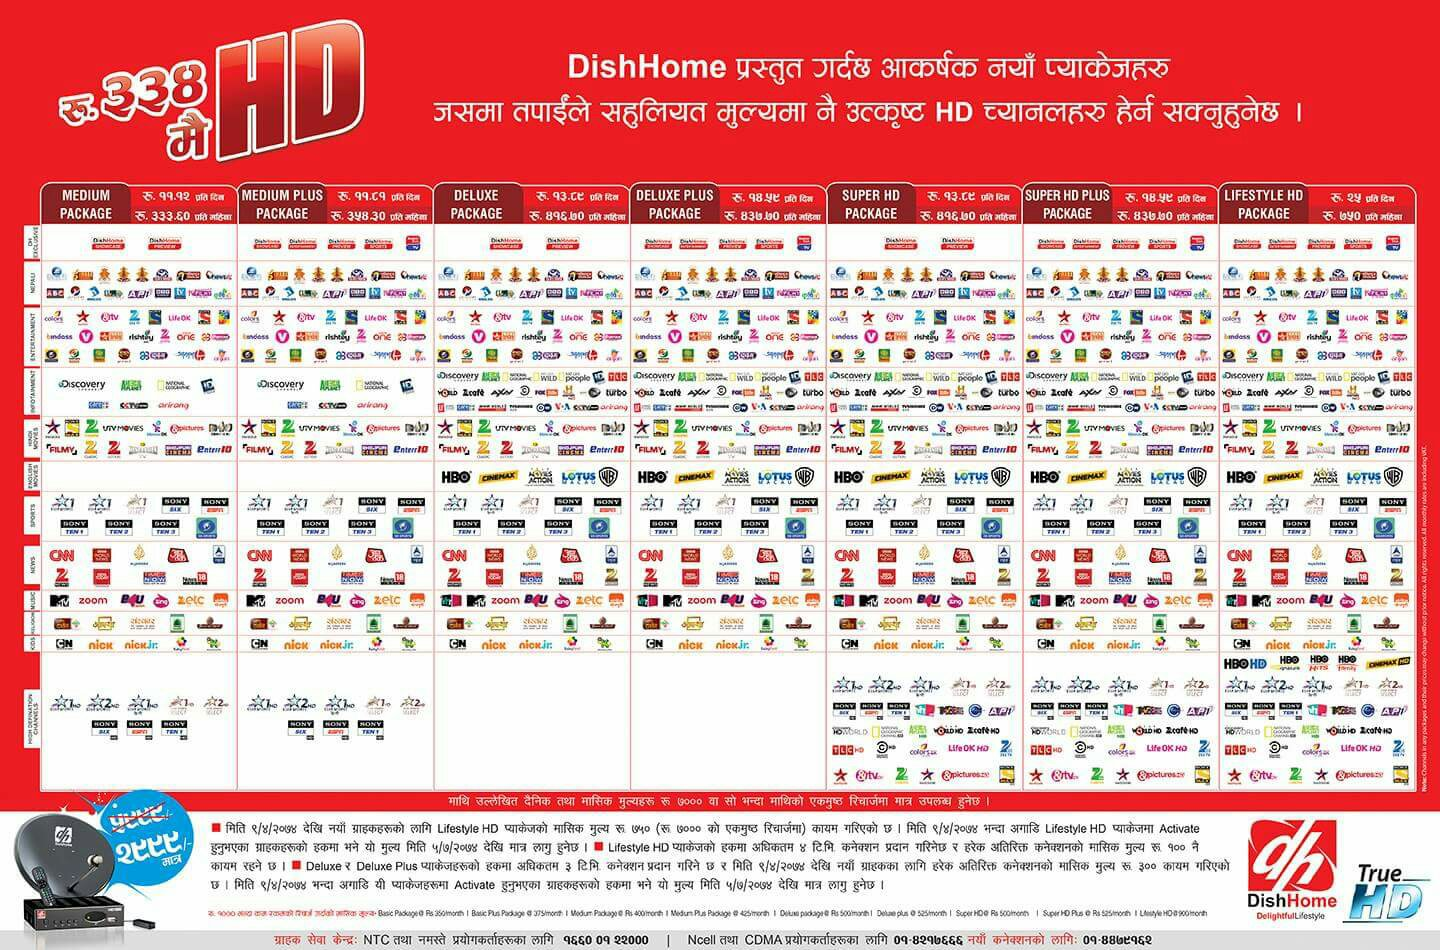 Dish Home Nepal- Installation, Packages and Review